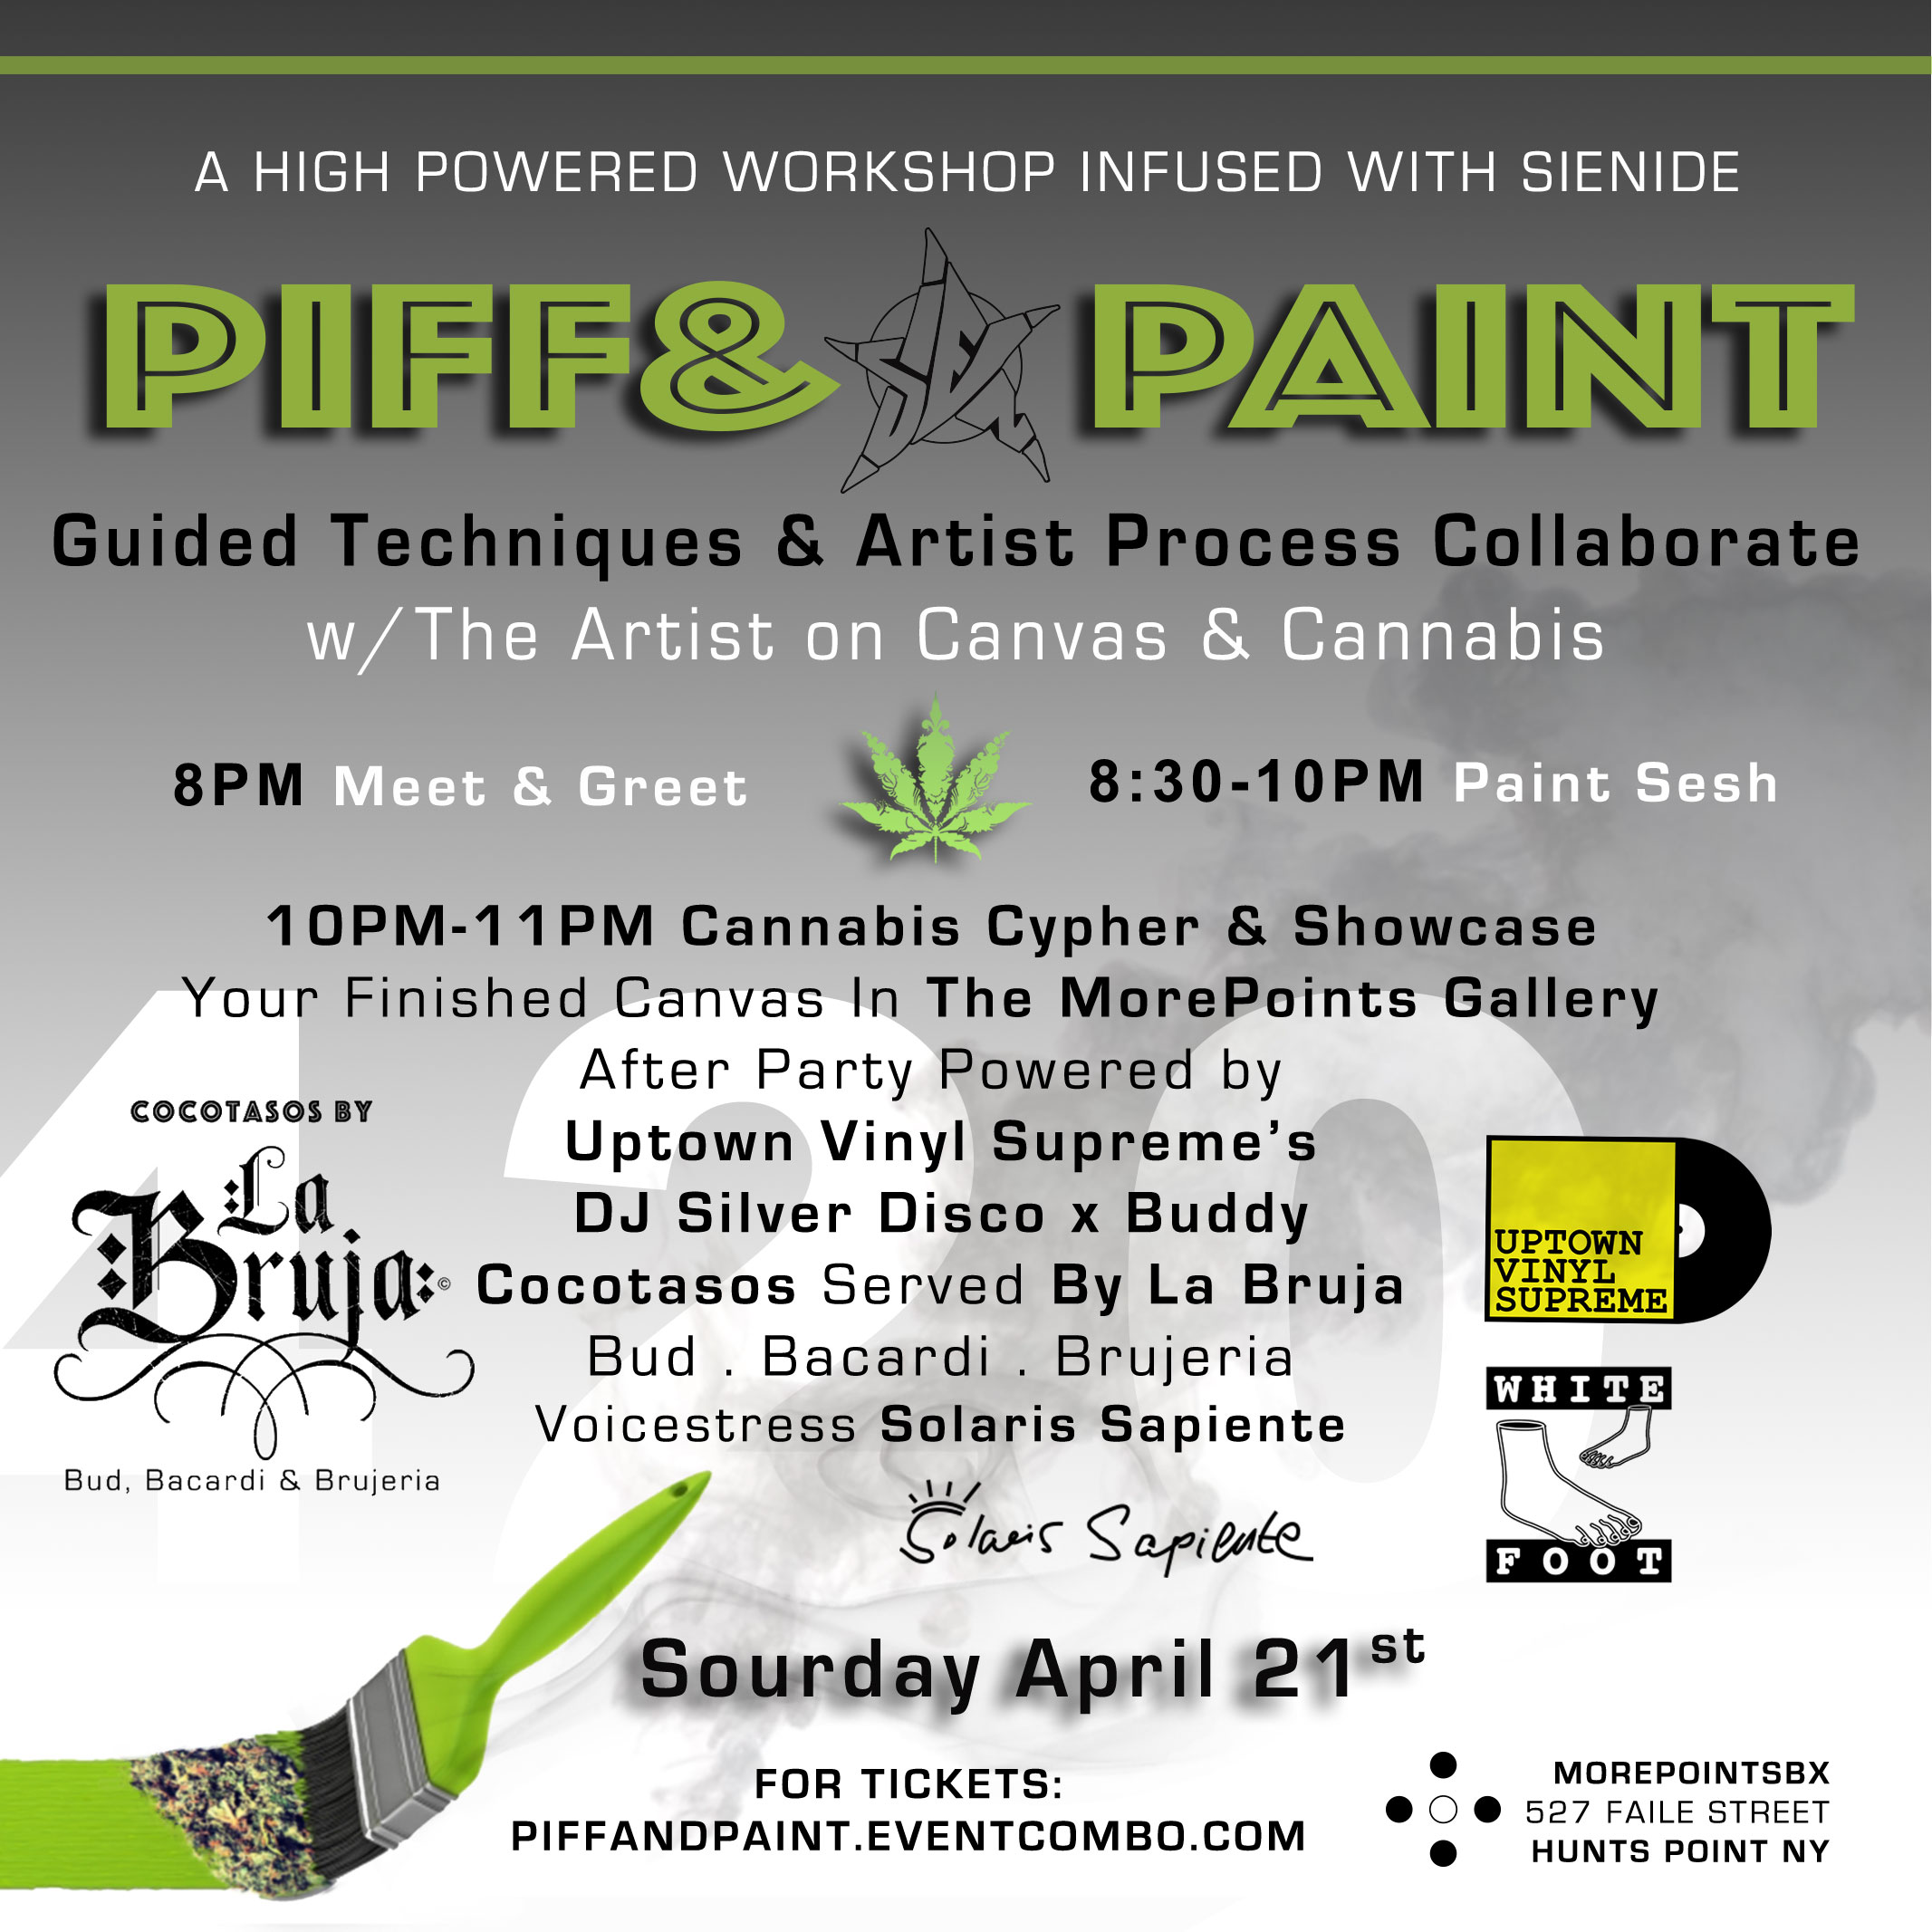 Piff and Paint